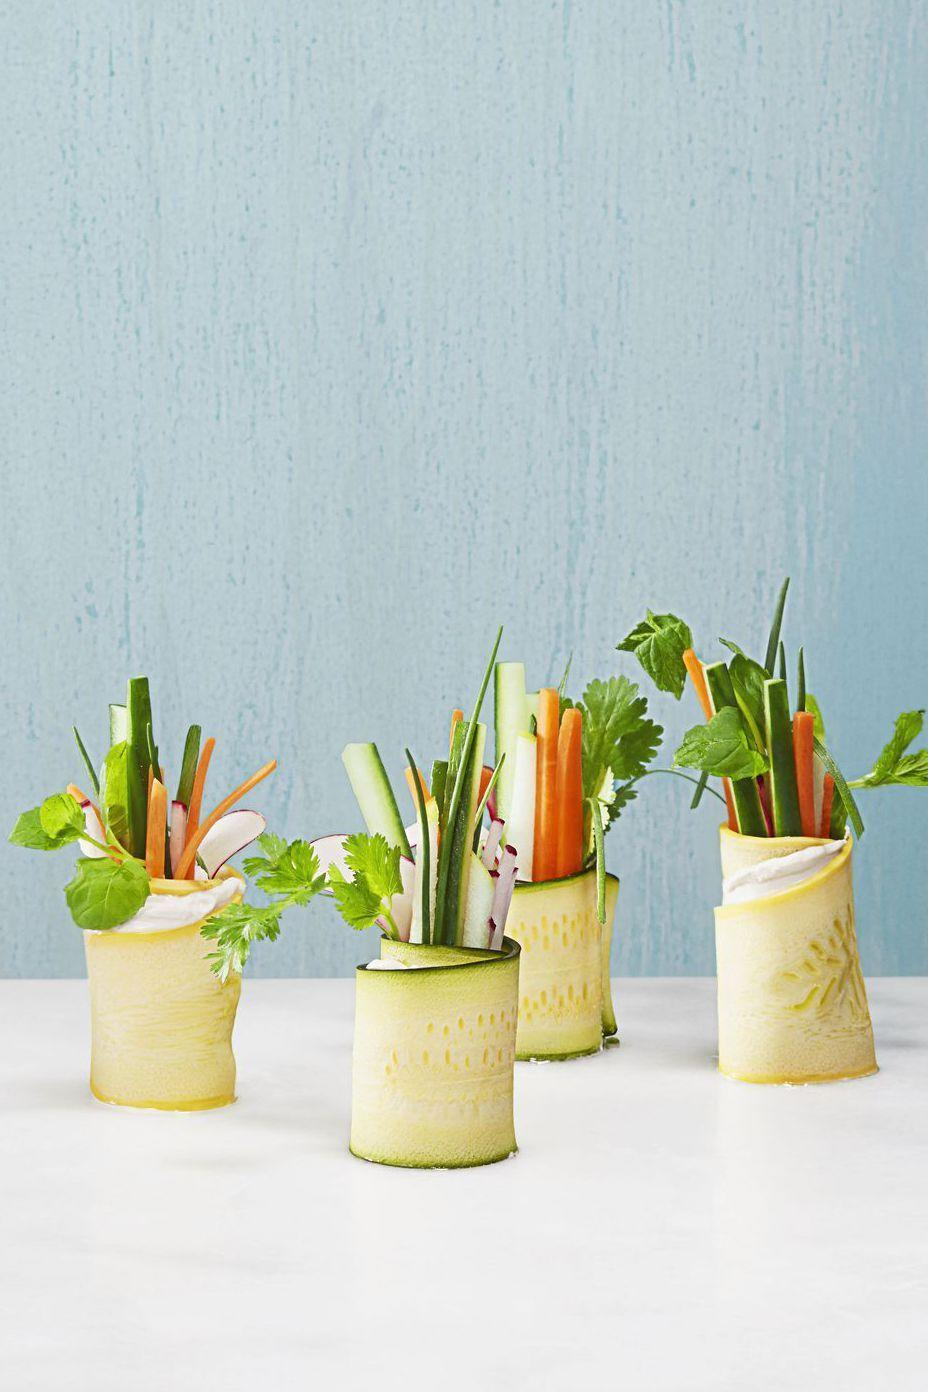 """<p>Wrap up your garden's bounty in wide zucchini or squash ribbons for a veggie-filled appetizer. </p><p><em><a href=""""https://www.goodhousekeeping.com/food-recipes/party-ideas/how-to/a33054/how-to-make-veggie-rolls/"""" rel=""""nofollow noopener"""" target=""""_blank"""" data-ylk=""""slk:Get the recipe for Summer Veggie Rolls »"""" class=""""link rapid-noclick-resp"""">Get the recipe for Summer Veggie Rolls » </a></em></p>"""